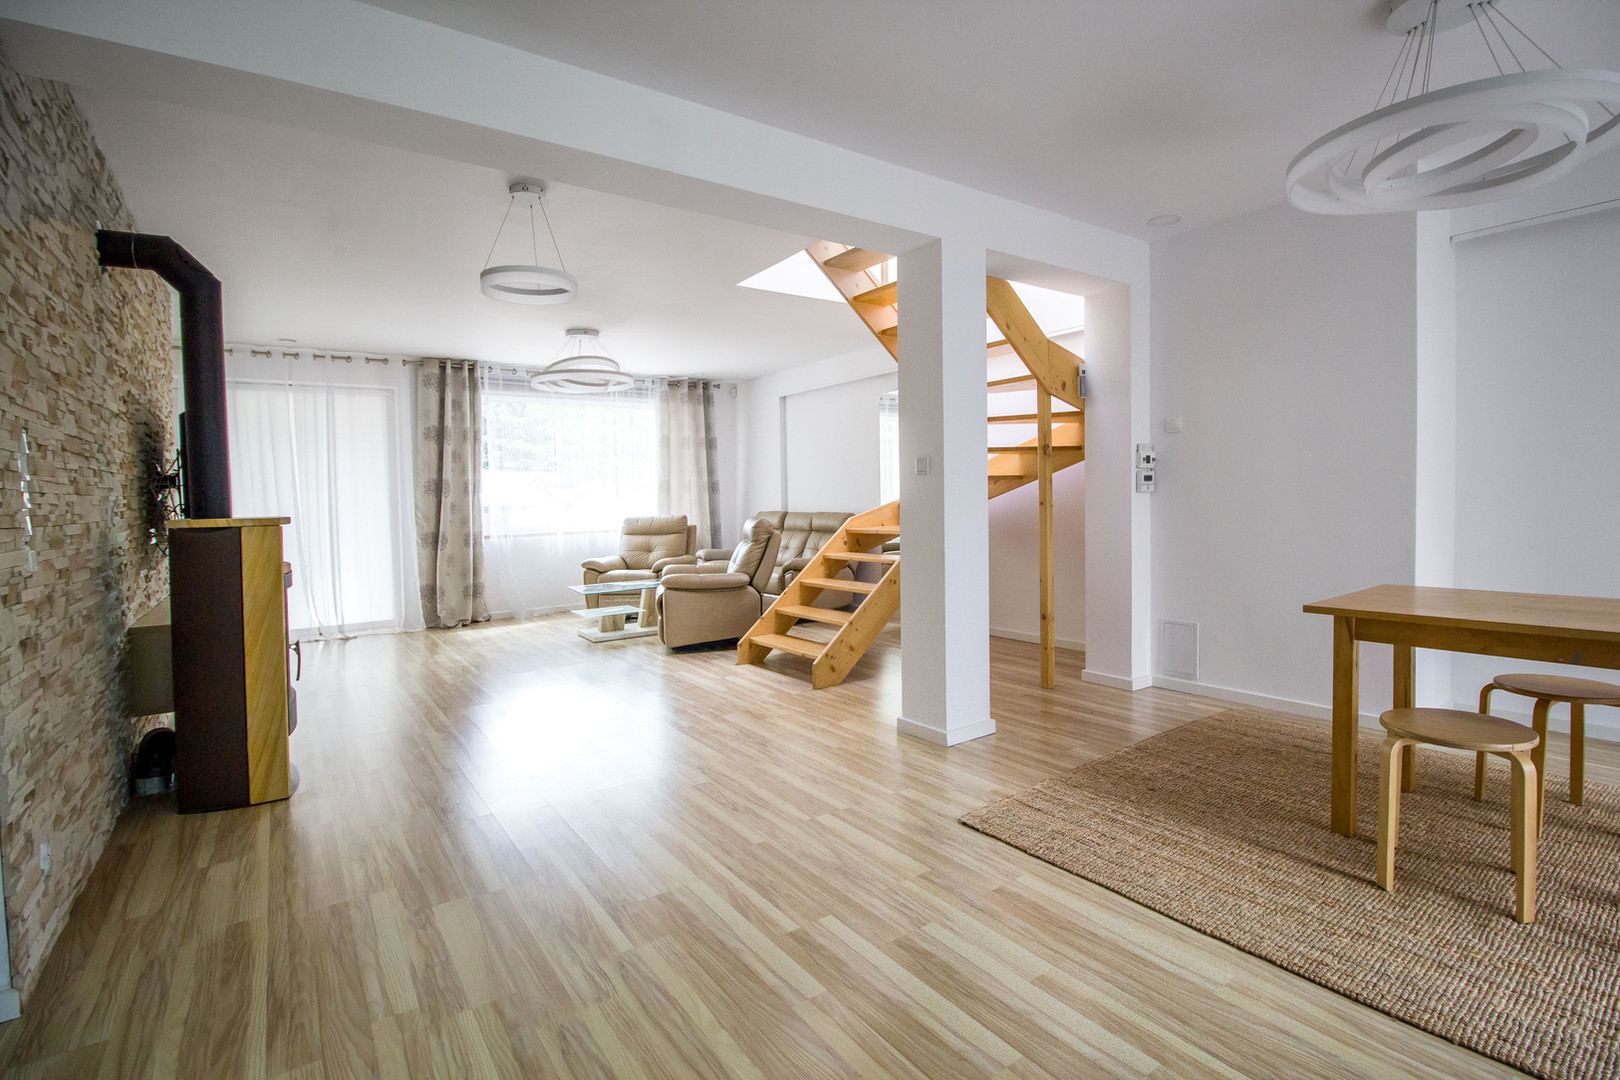 House for rent Poznan Poland (17 of 31).